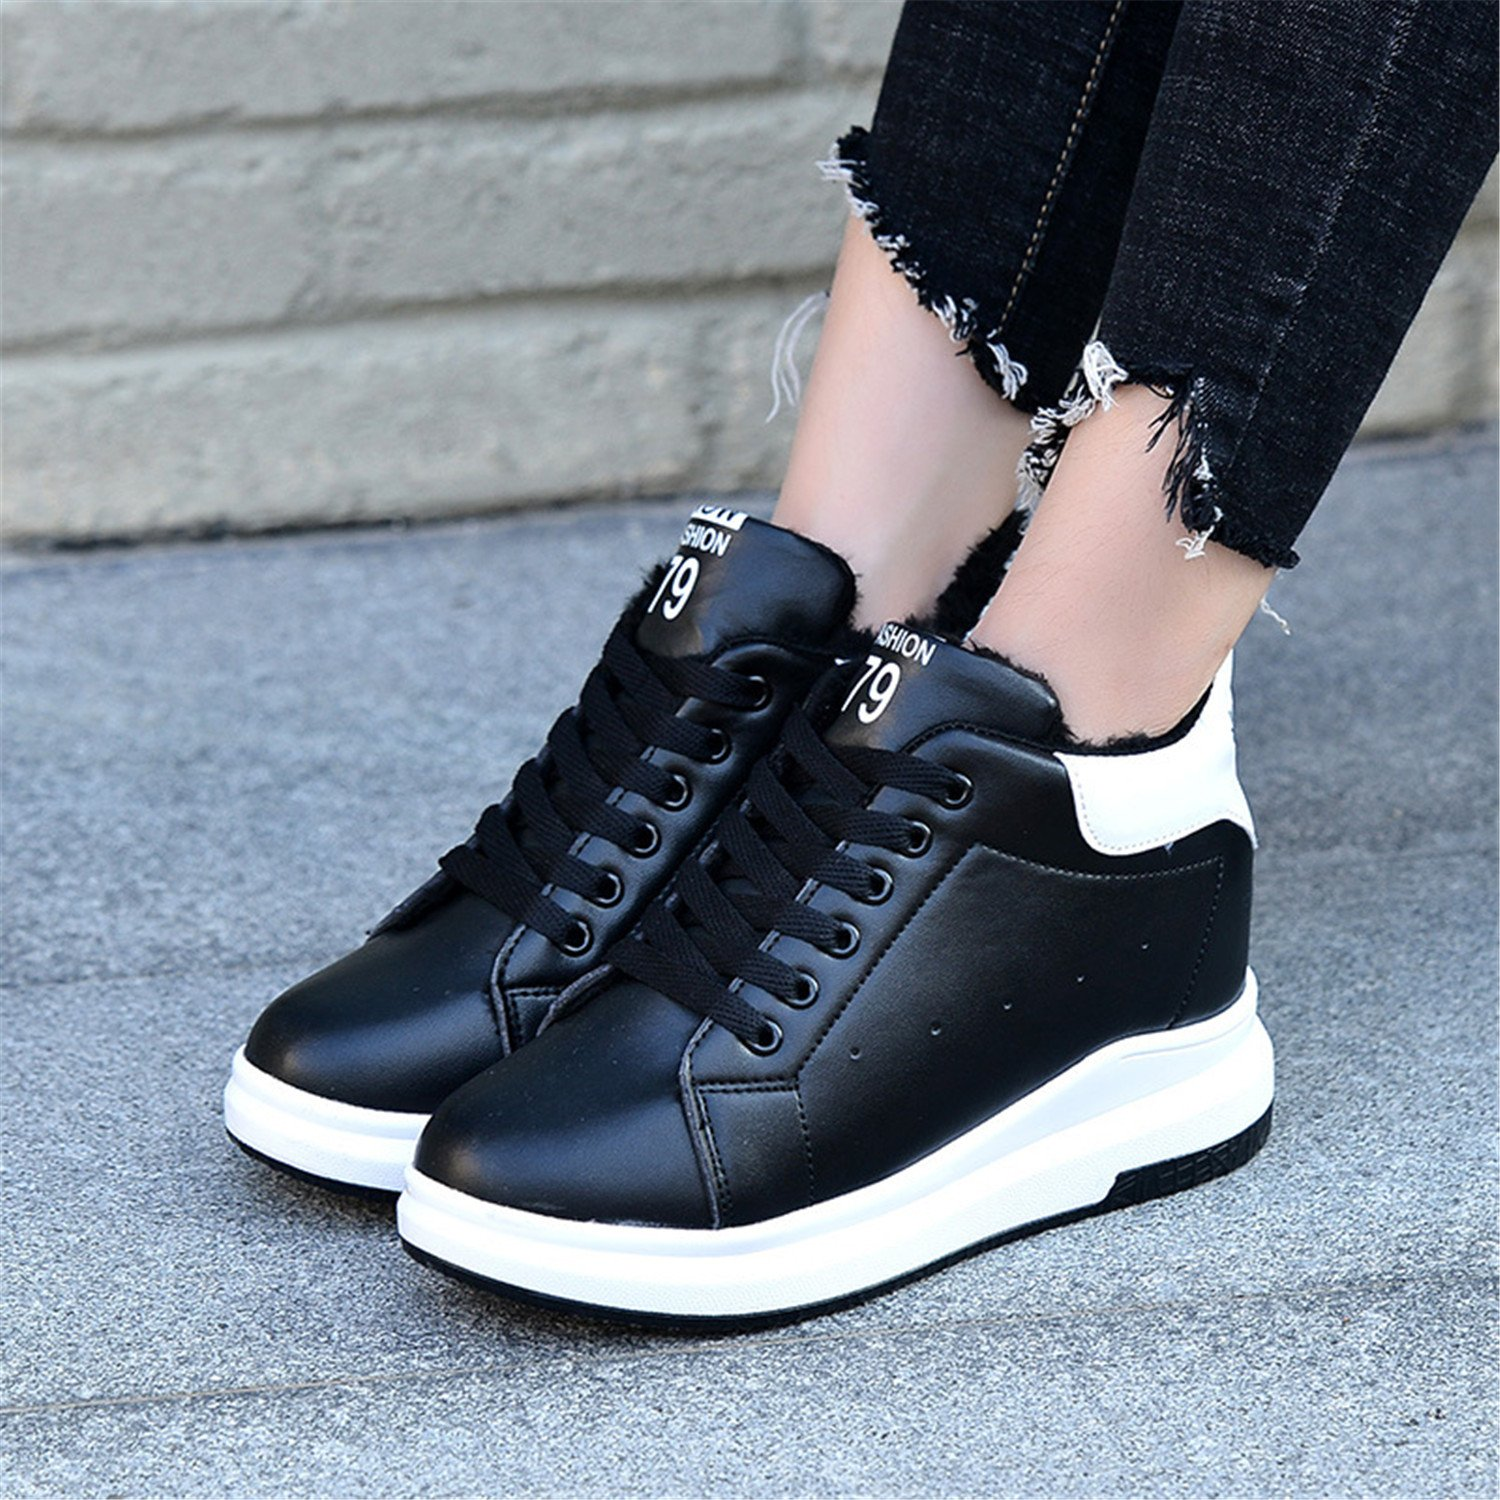 Amazon.com | Winter White High Platform Sneakers Women Platform Shoes Warm Leather Casual Shoes Women Tenis Feminino | Fashion Sneakers